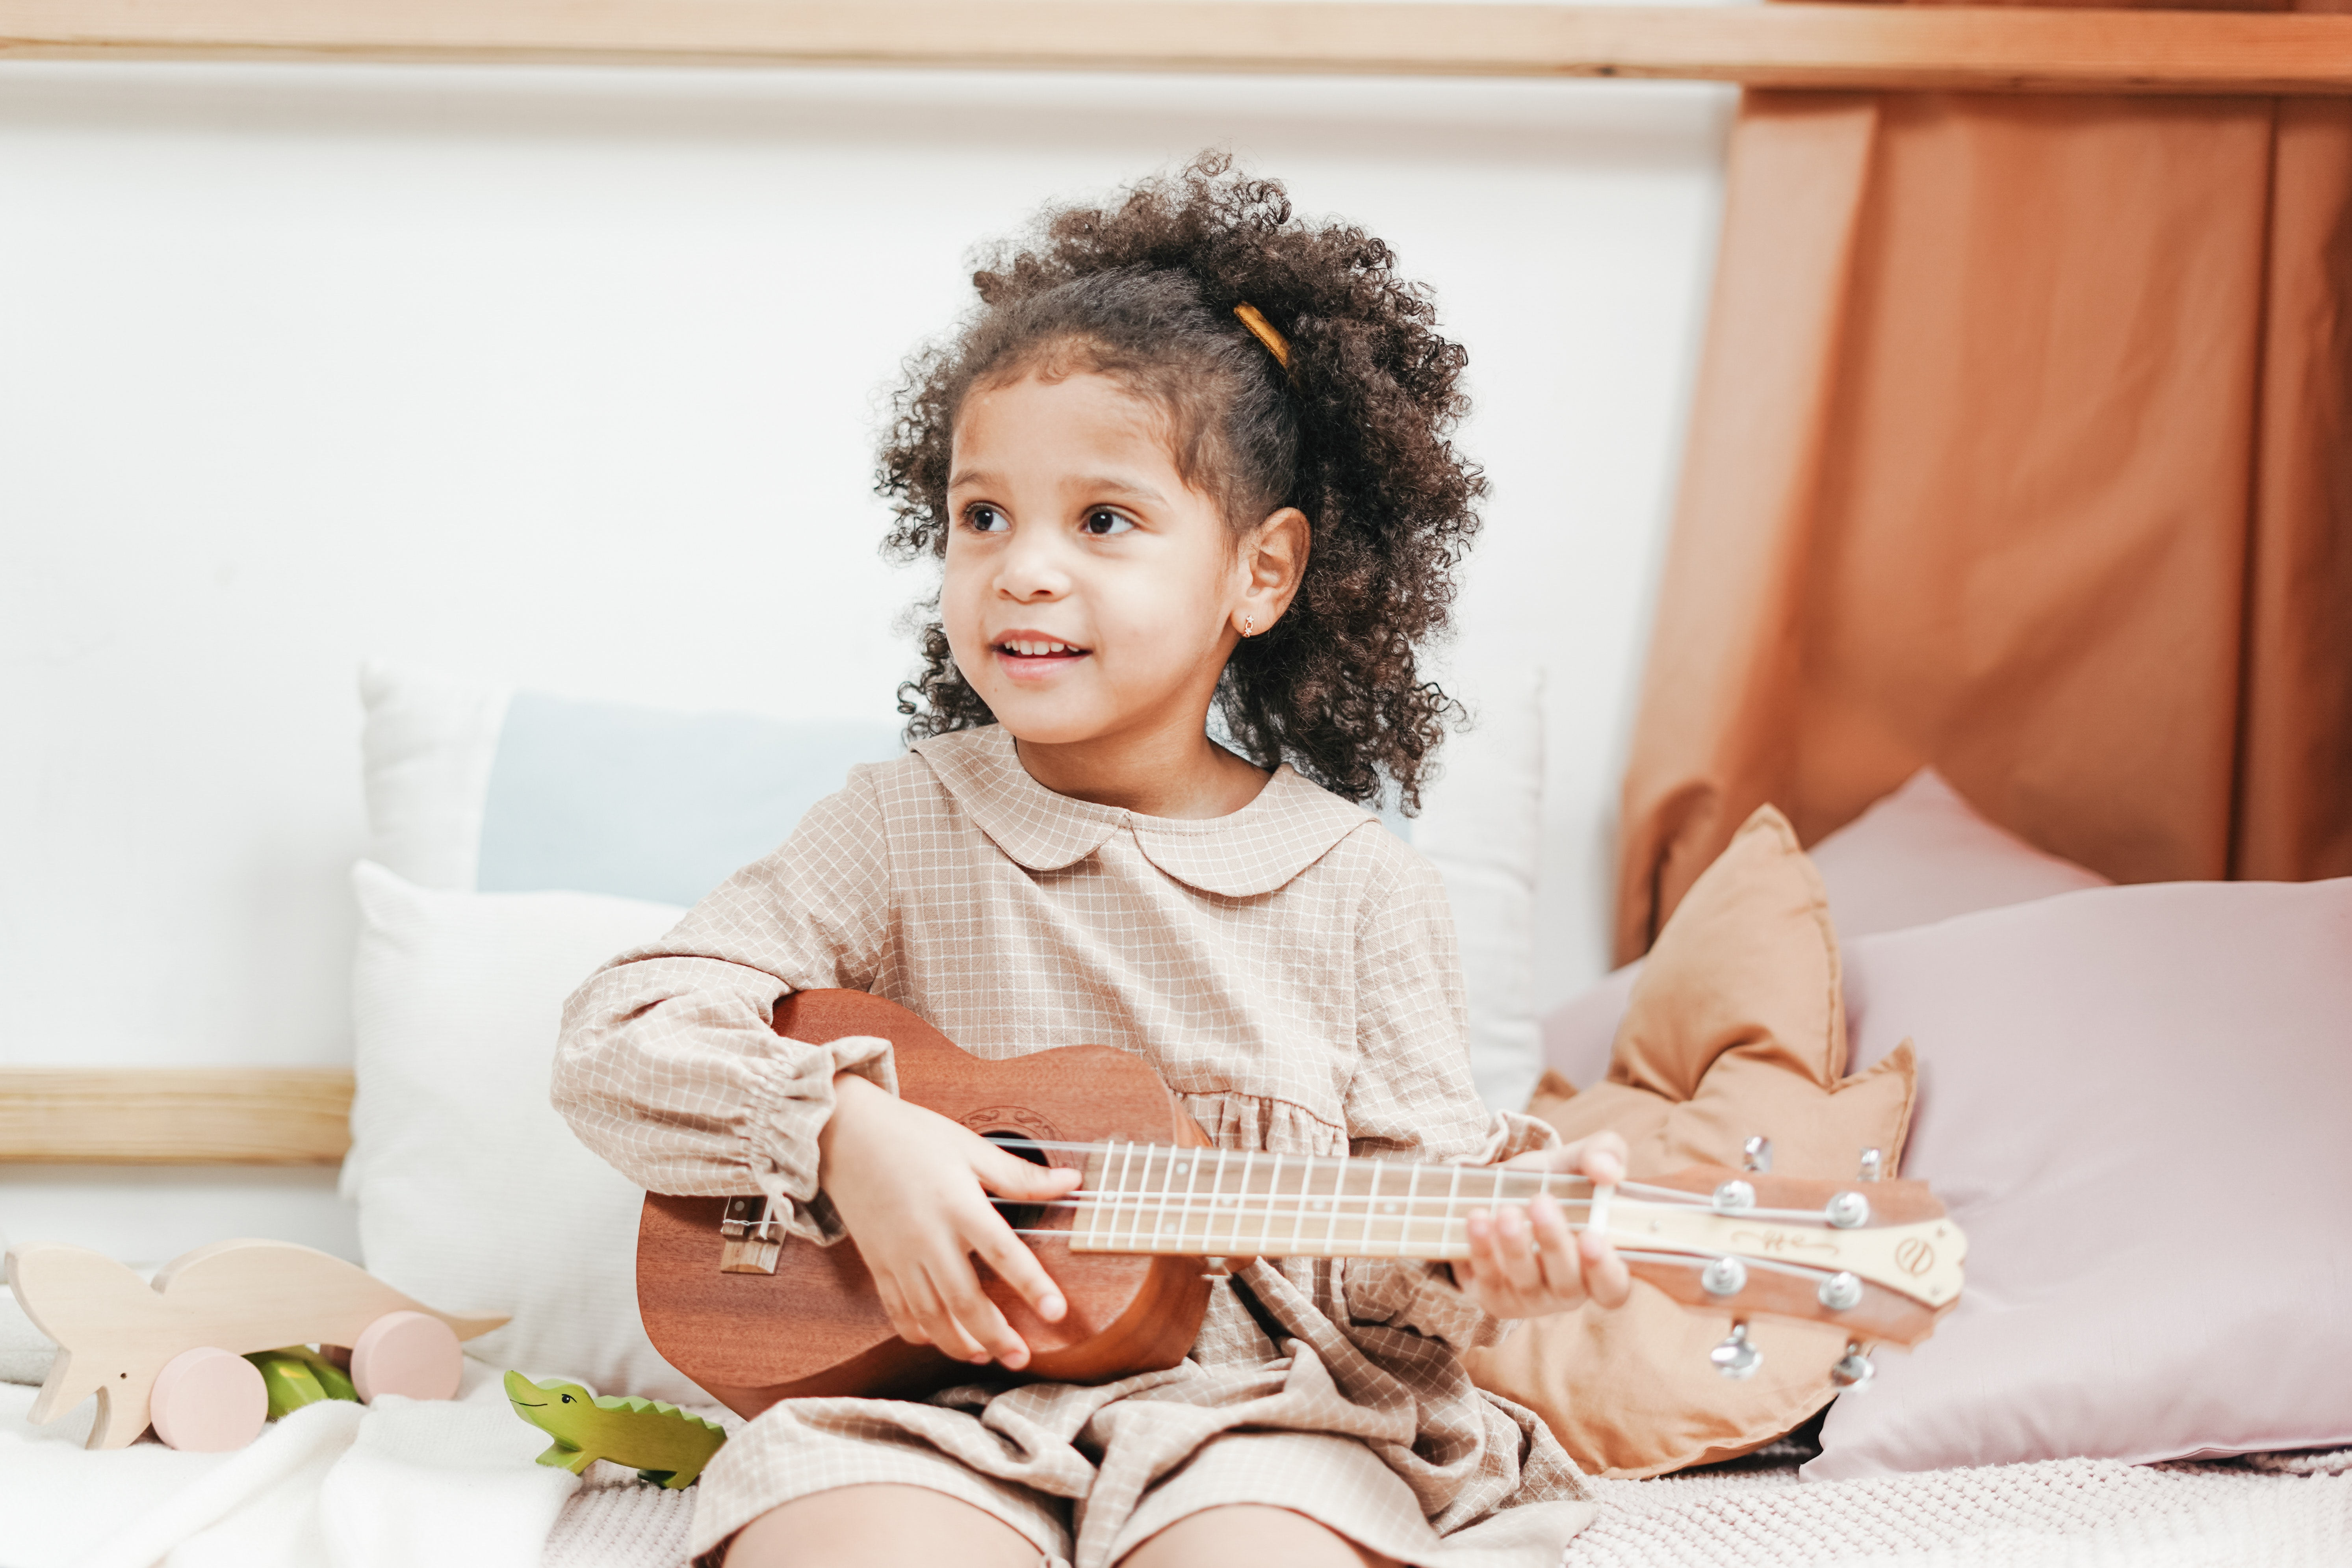 The Ukulele: a Top 10 Instruments for Children to Learn to Play Music